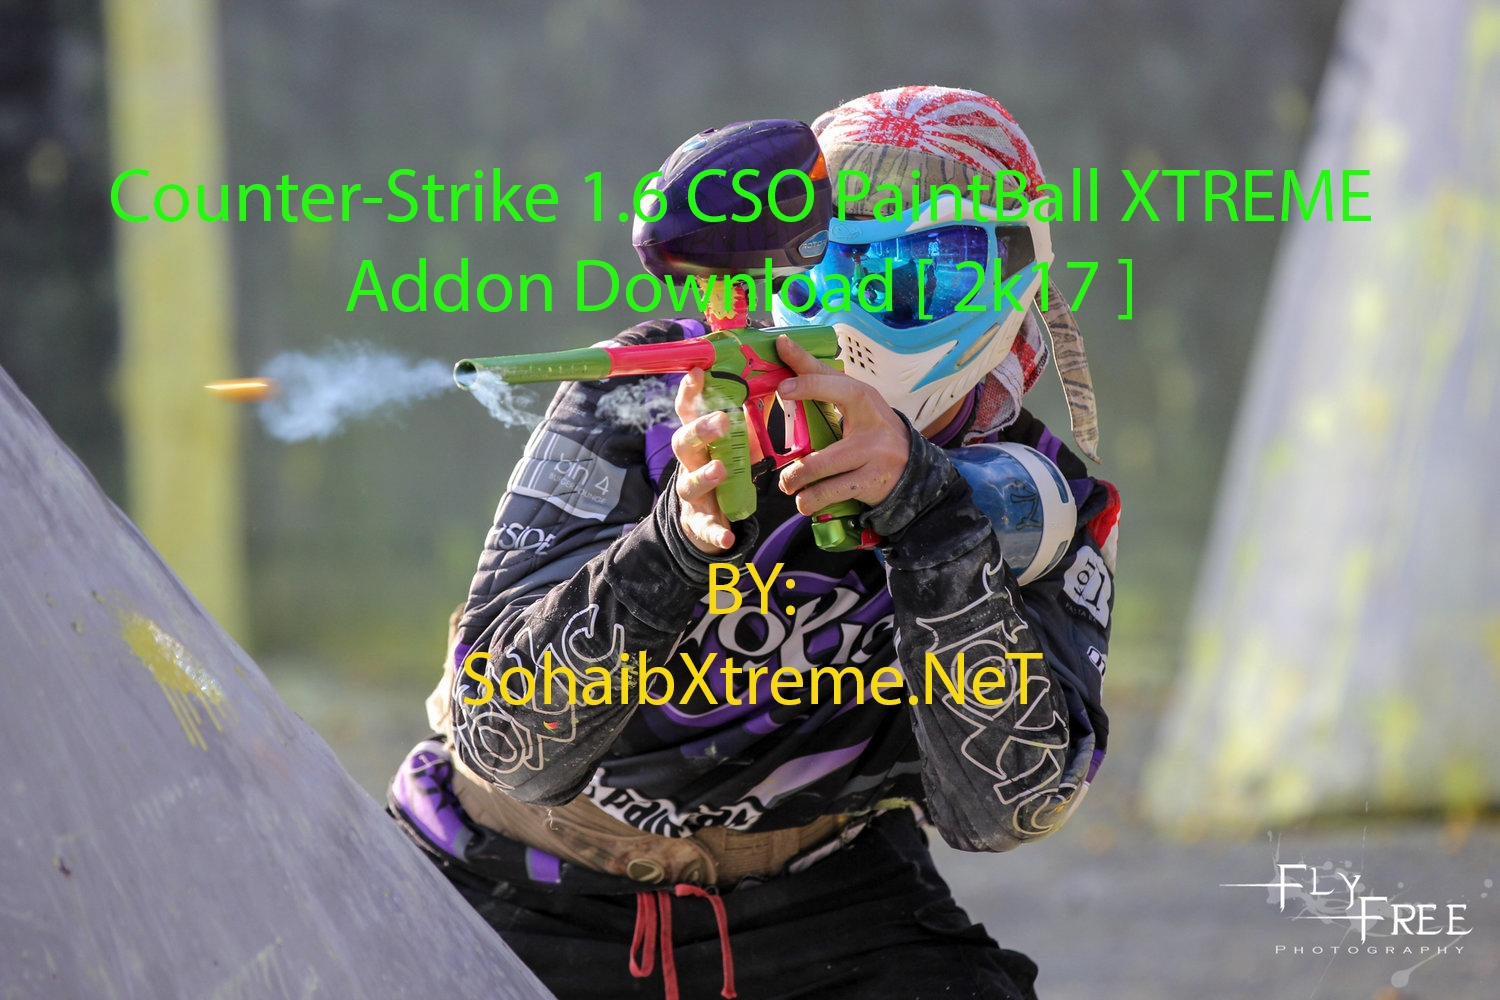 Counter-Strike 1 6 CSO PaintBall XTREME Addon Download